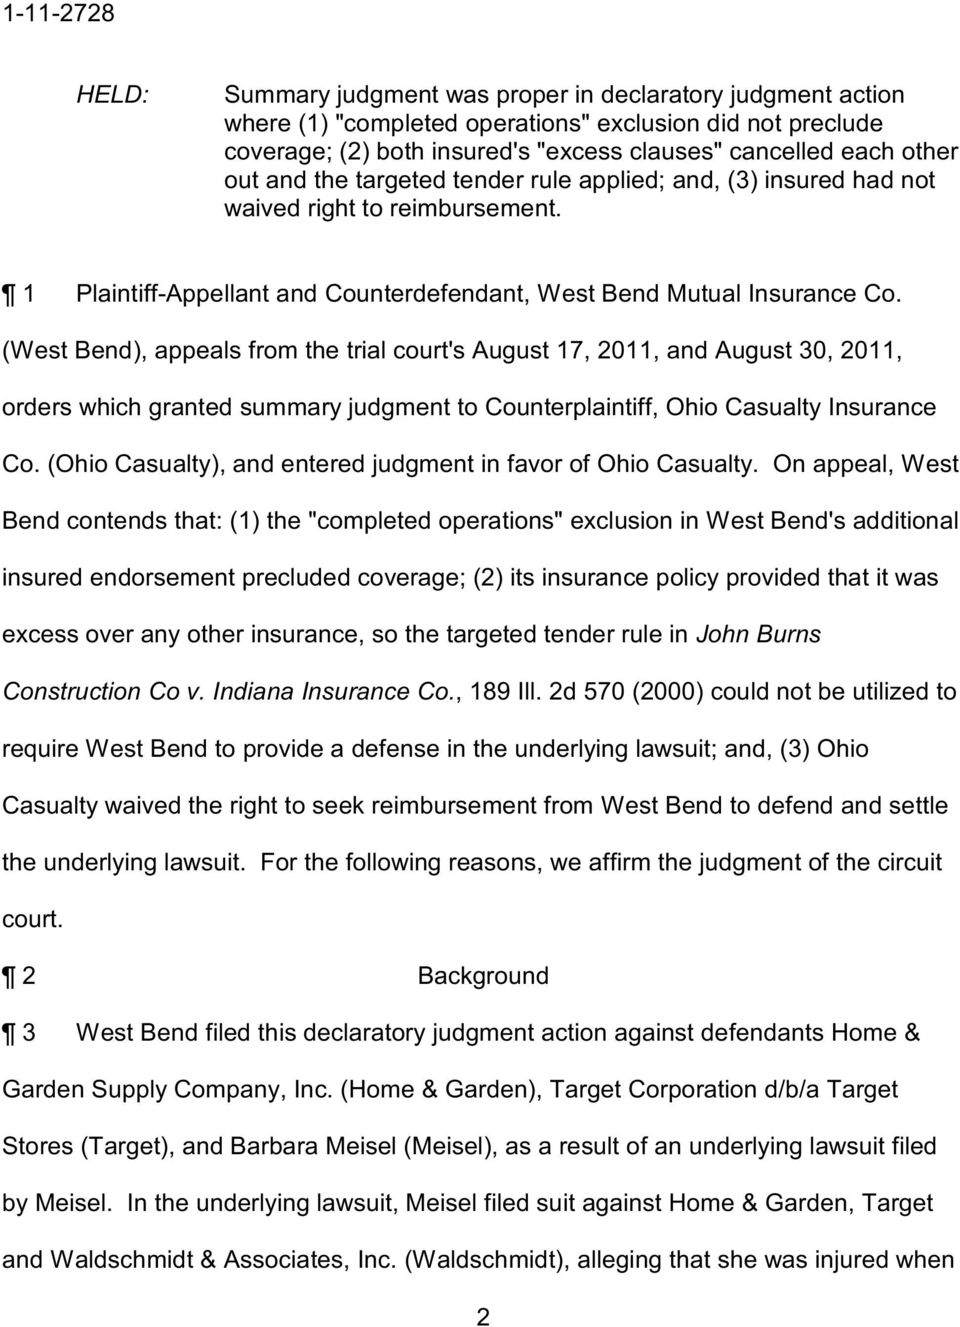 (West Bend, appeals from the trial court's August 17, 2011, and August 30, 2011, orders which granted summary judgment to Counterplaintiff, Ohio Casualty Insurance Co.